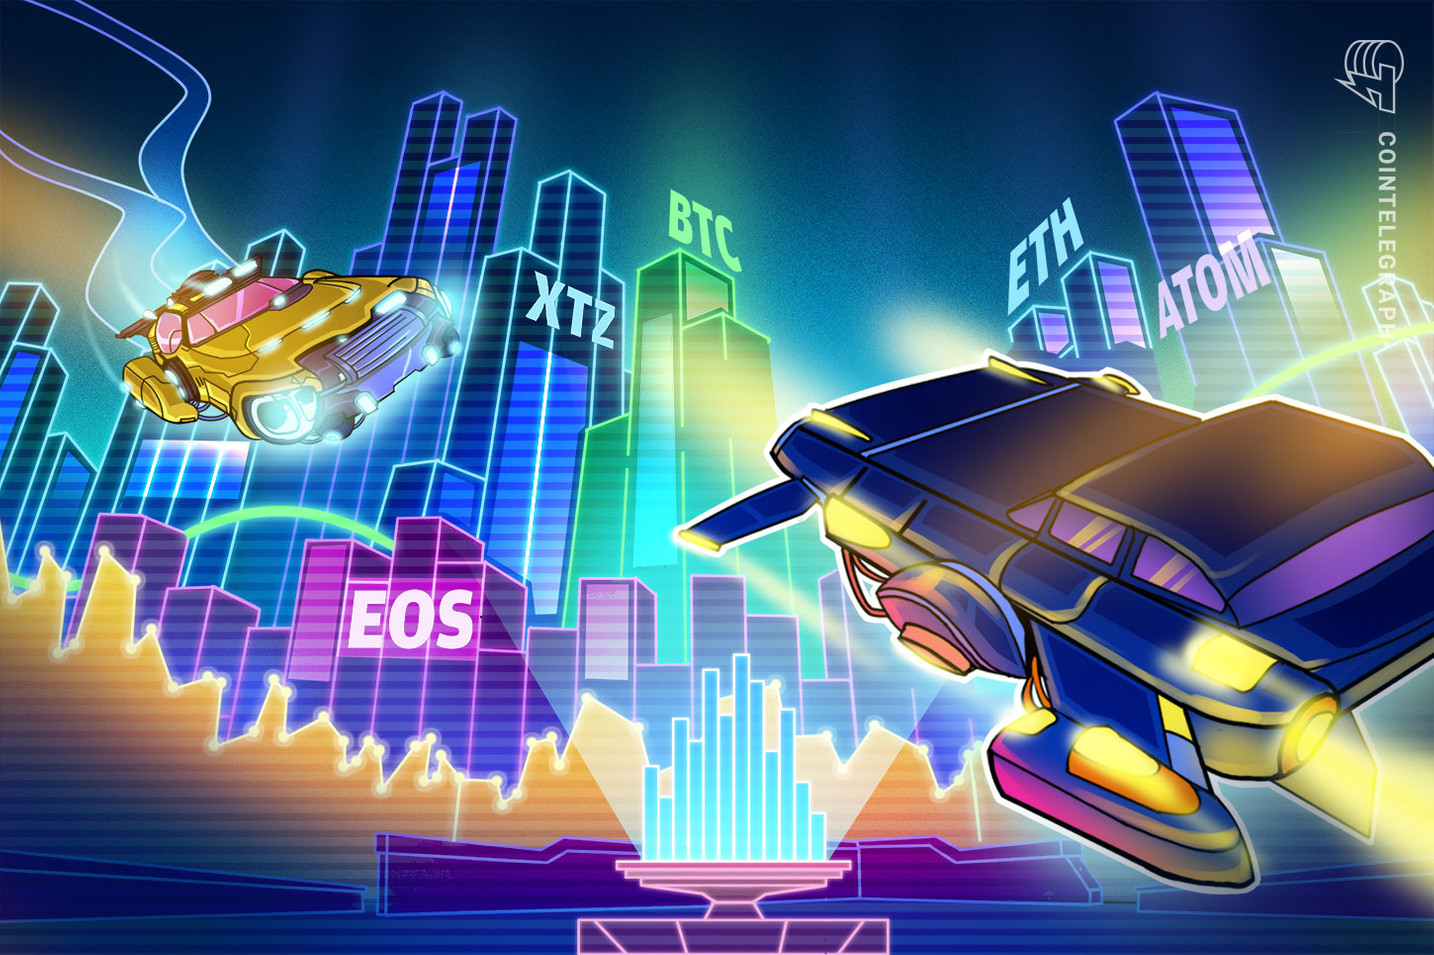 Top 5 Cryptocurrencies to Watch This Week: BTC, ETH, EOS, XTZ, ATOM